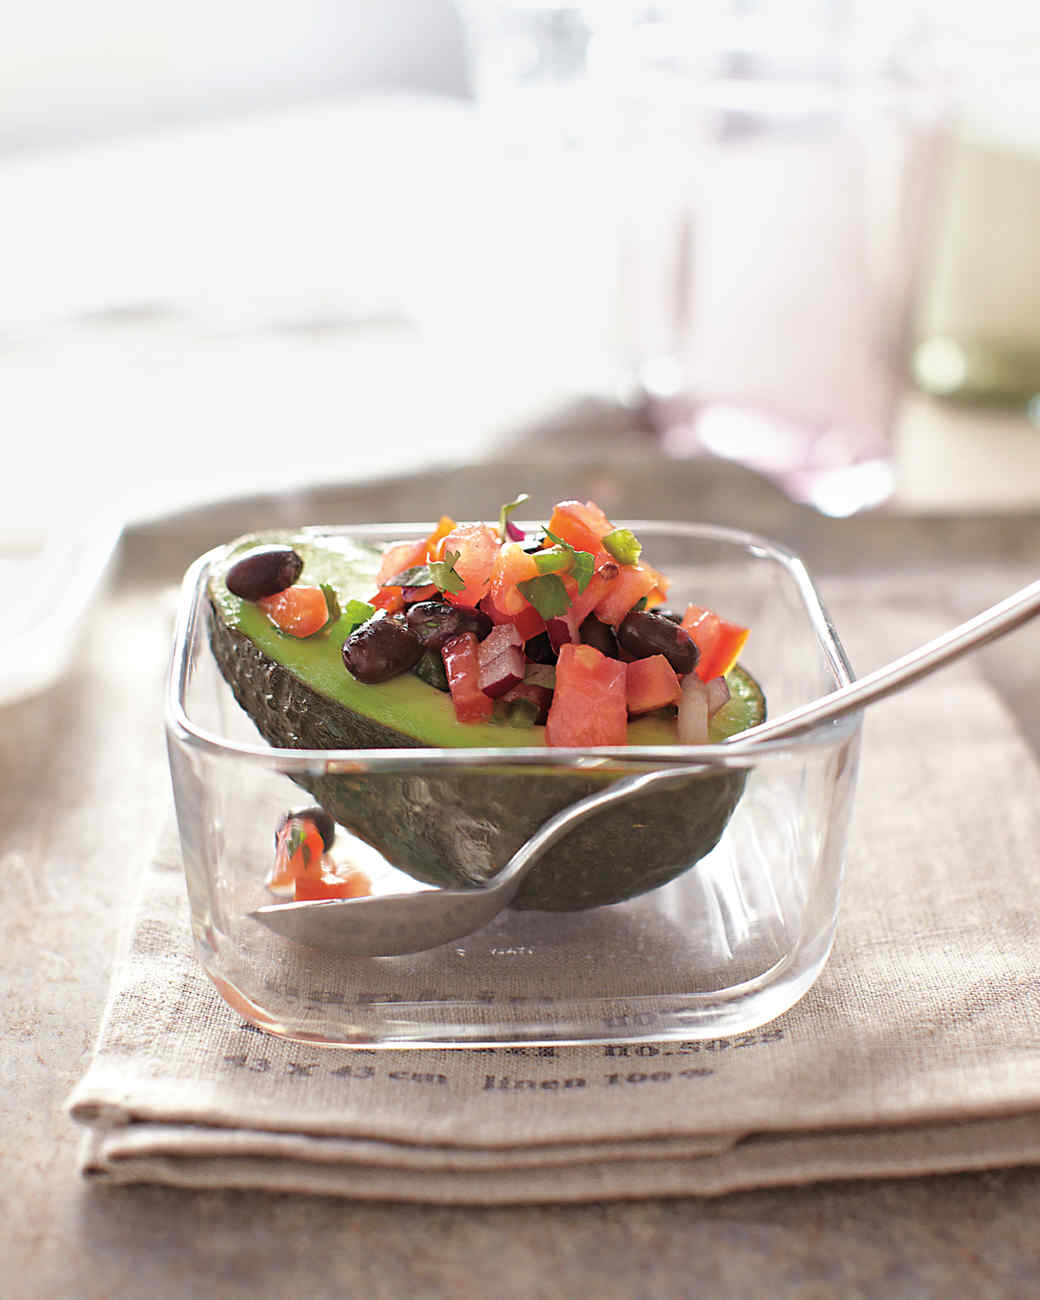 Avocado with Black Bean Salsa